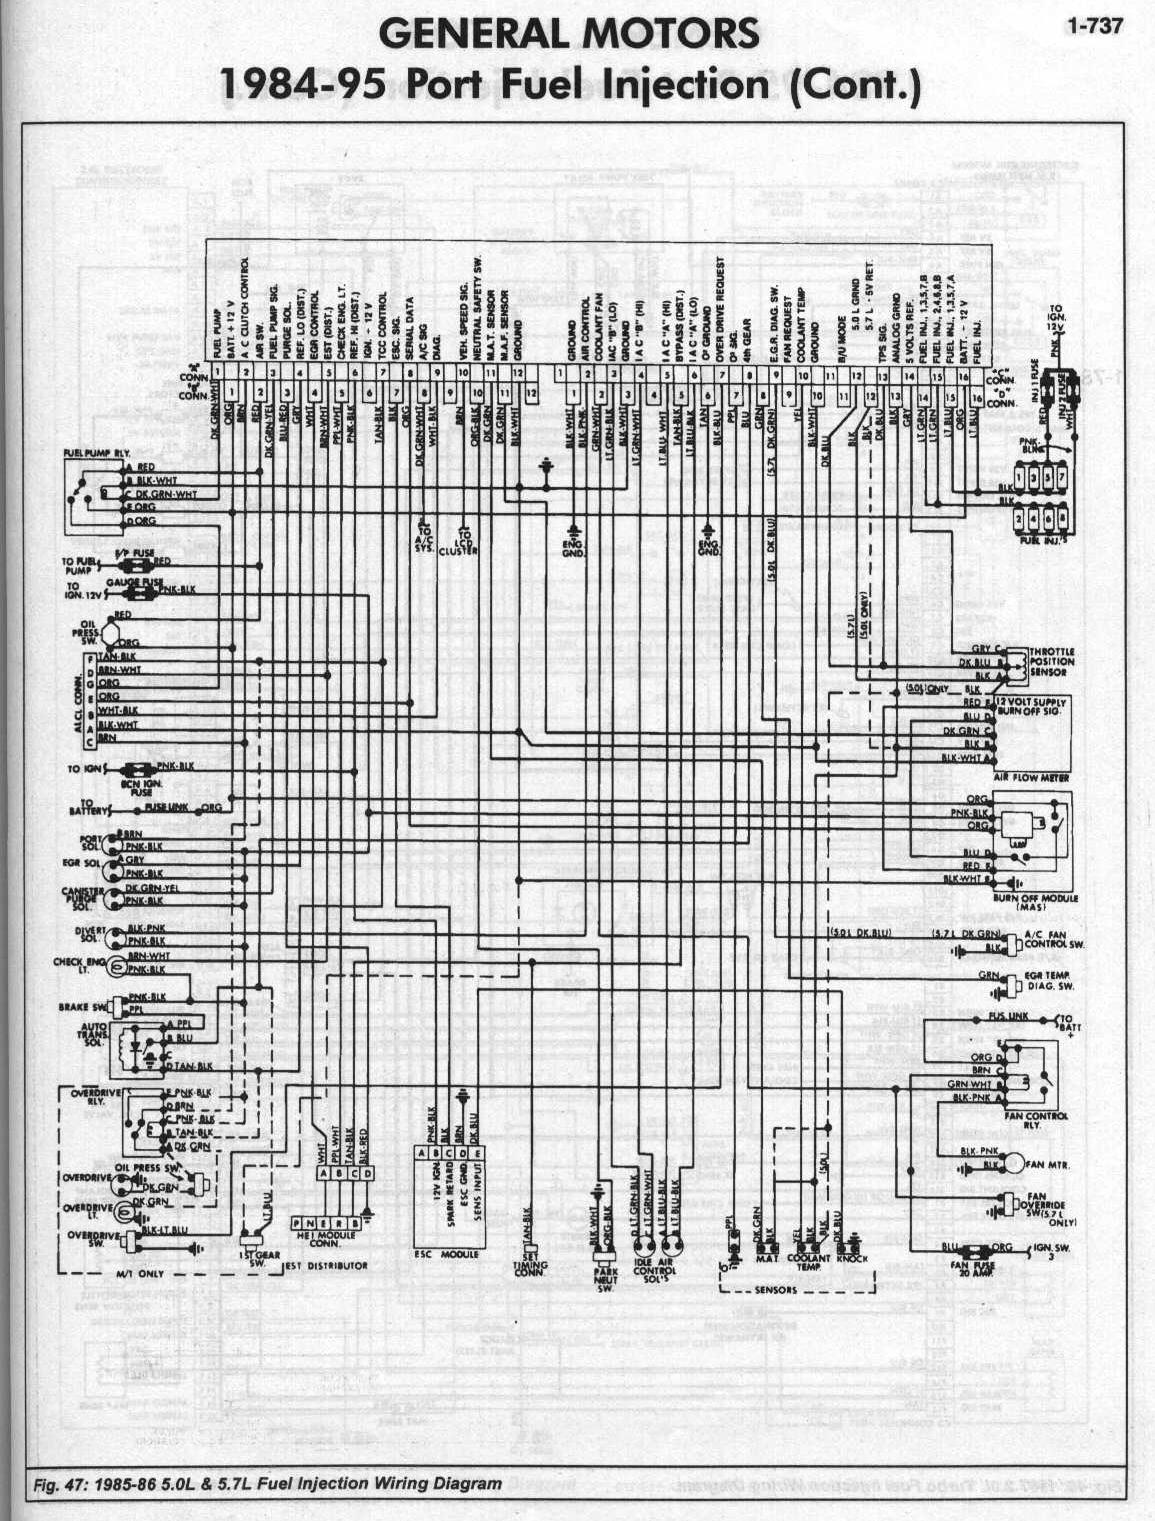 hight resolution of 1985 camaro fuse diagram wiring diagram mega 1985 camaro radio wiring diagram 1985 camaro wiring diagram